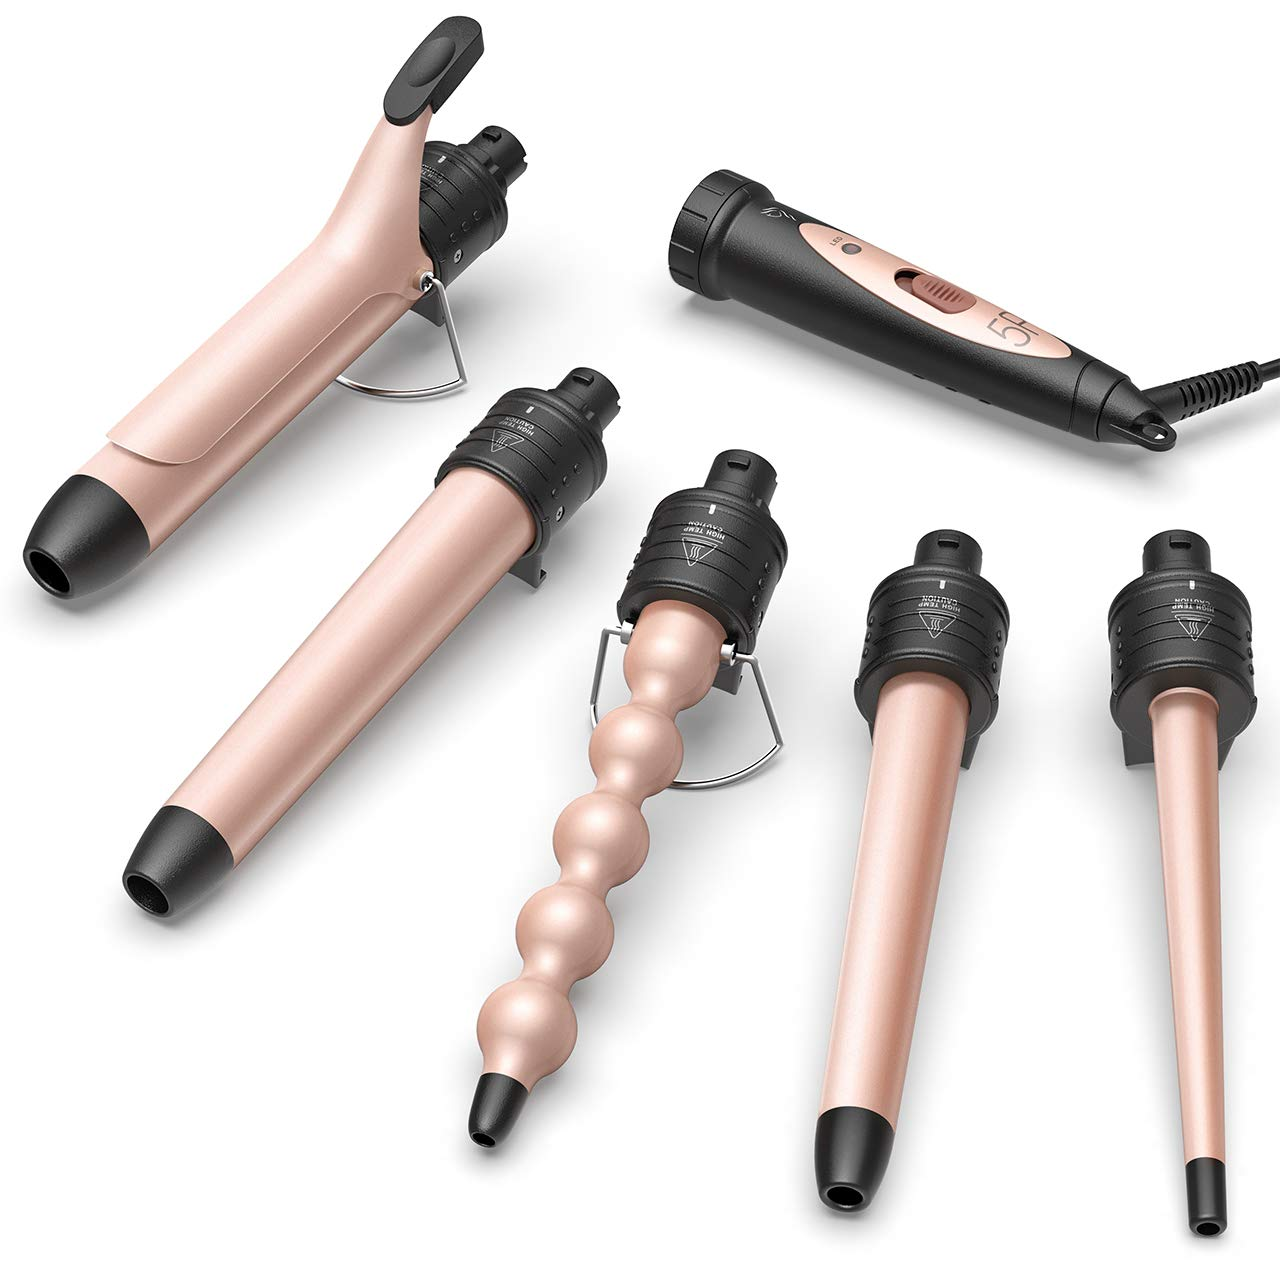 Homitt 5 in 1 Wand Curling Iron Set with 5 pcs Interchangeable Curling Iron Ceramic Barrels, Ceramic Curling Wand for Beach Loose Wavy with Heat Resistant Glove and Hairpin-Rose Gold